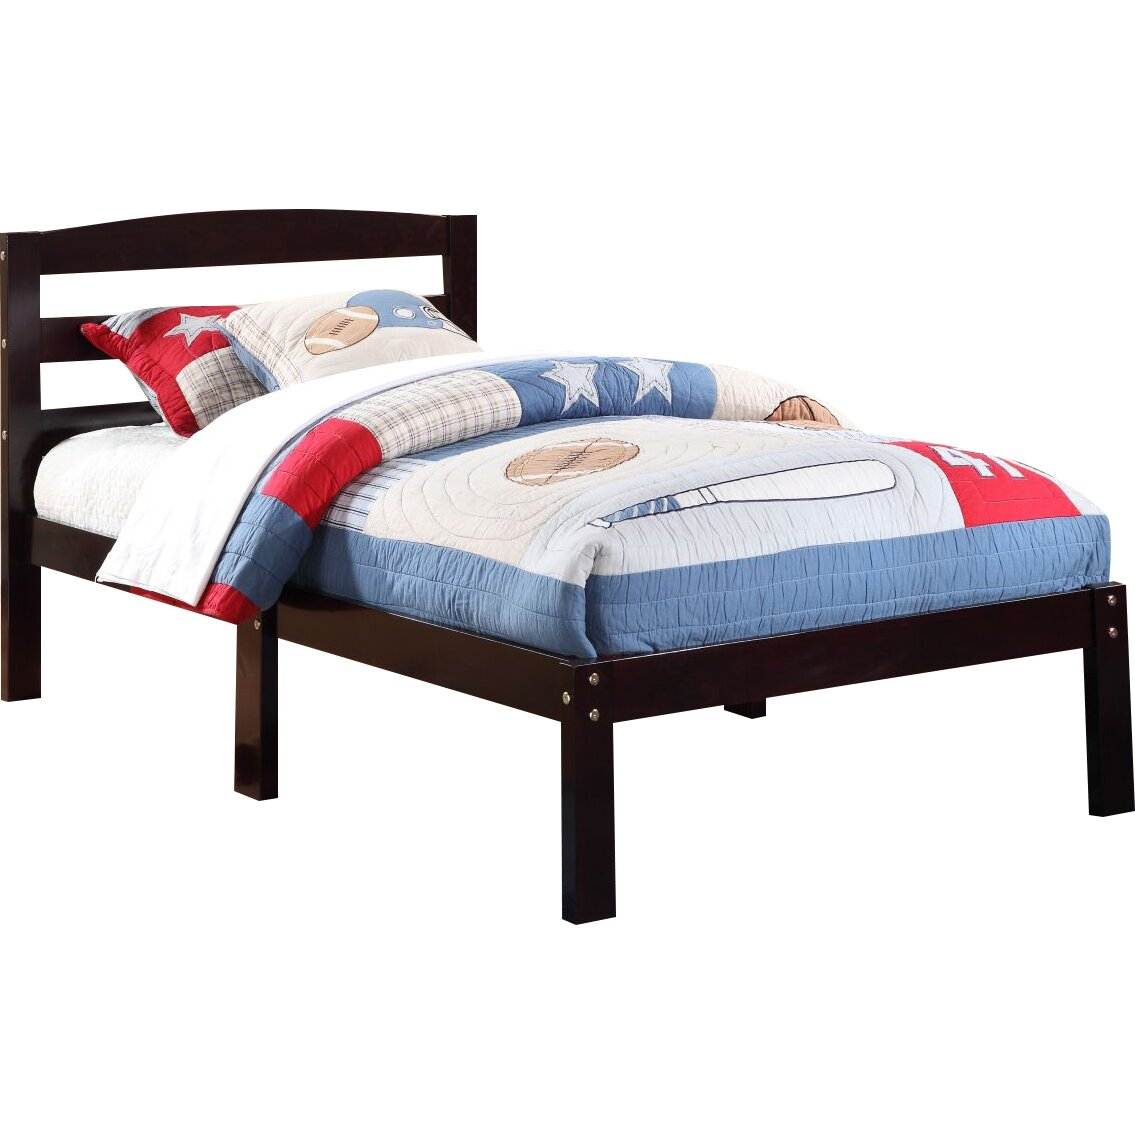 williams import co crosby twin slat bed reviews. Black Bedroom Furniture Sets. Home Design Ideas